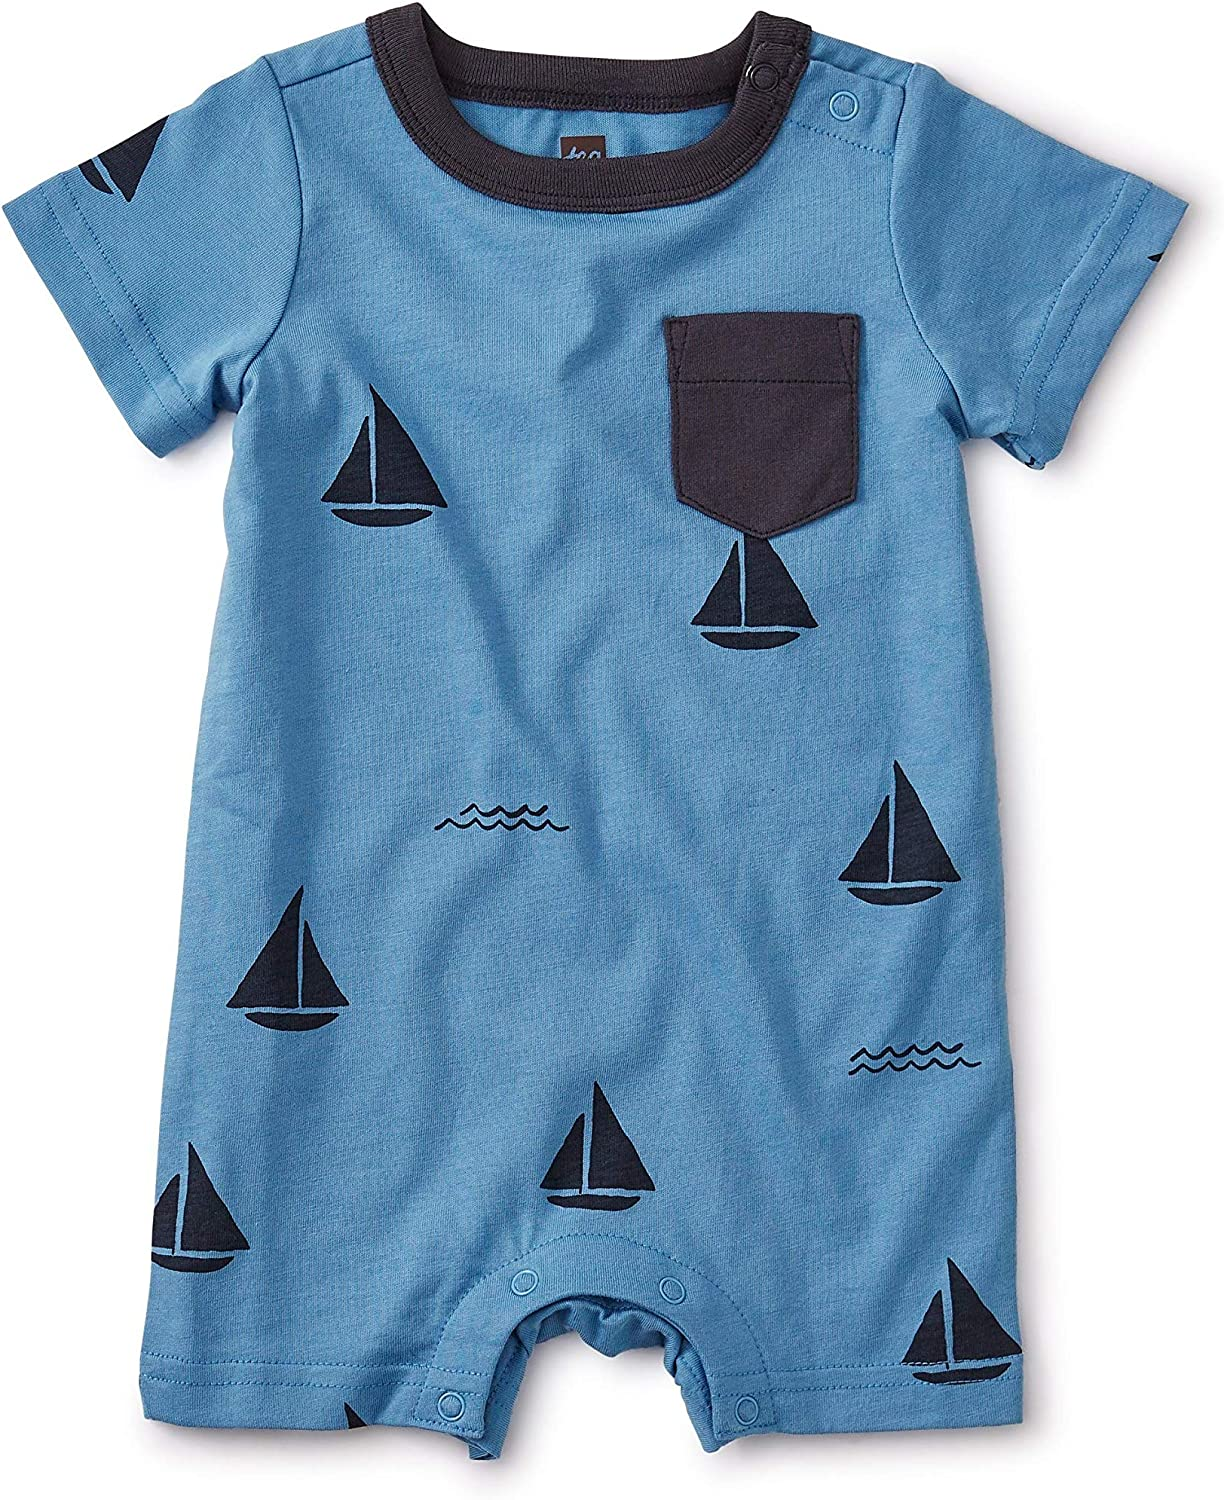 Tea Collection Newborn Sail Boats Printed Pocket Baby Romper